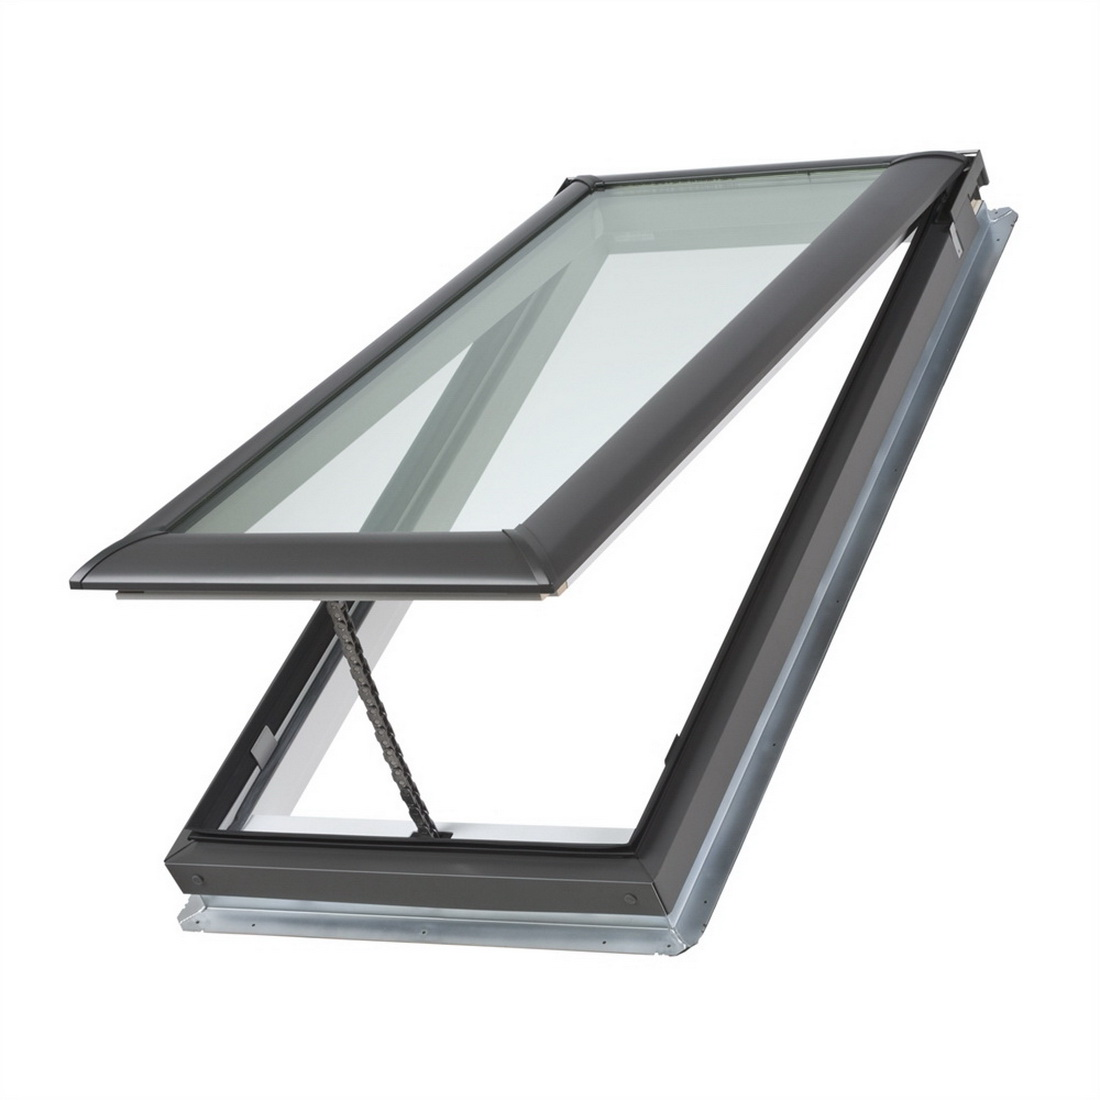 VS SO1 Pitched Roof Manual Opening Skylight 1140x700mm VS S01 2004A